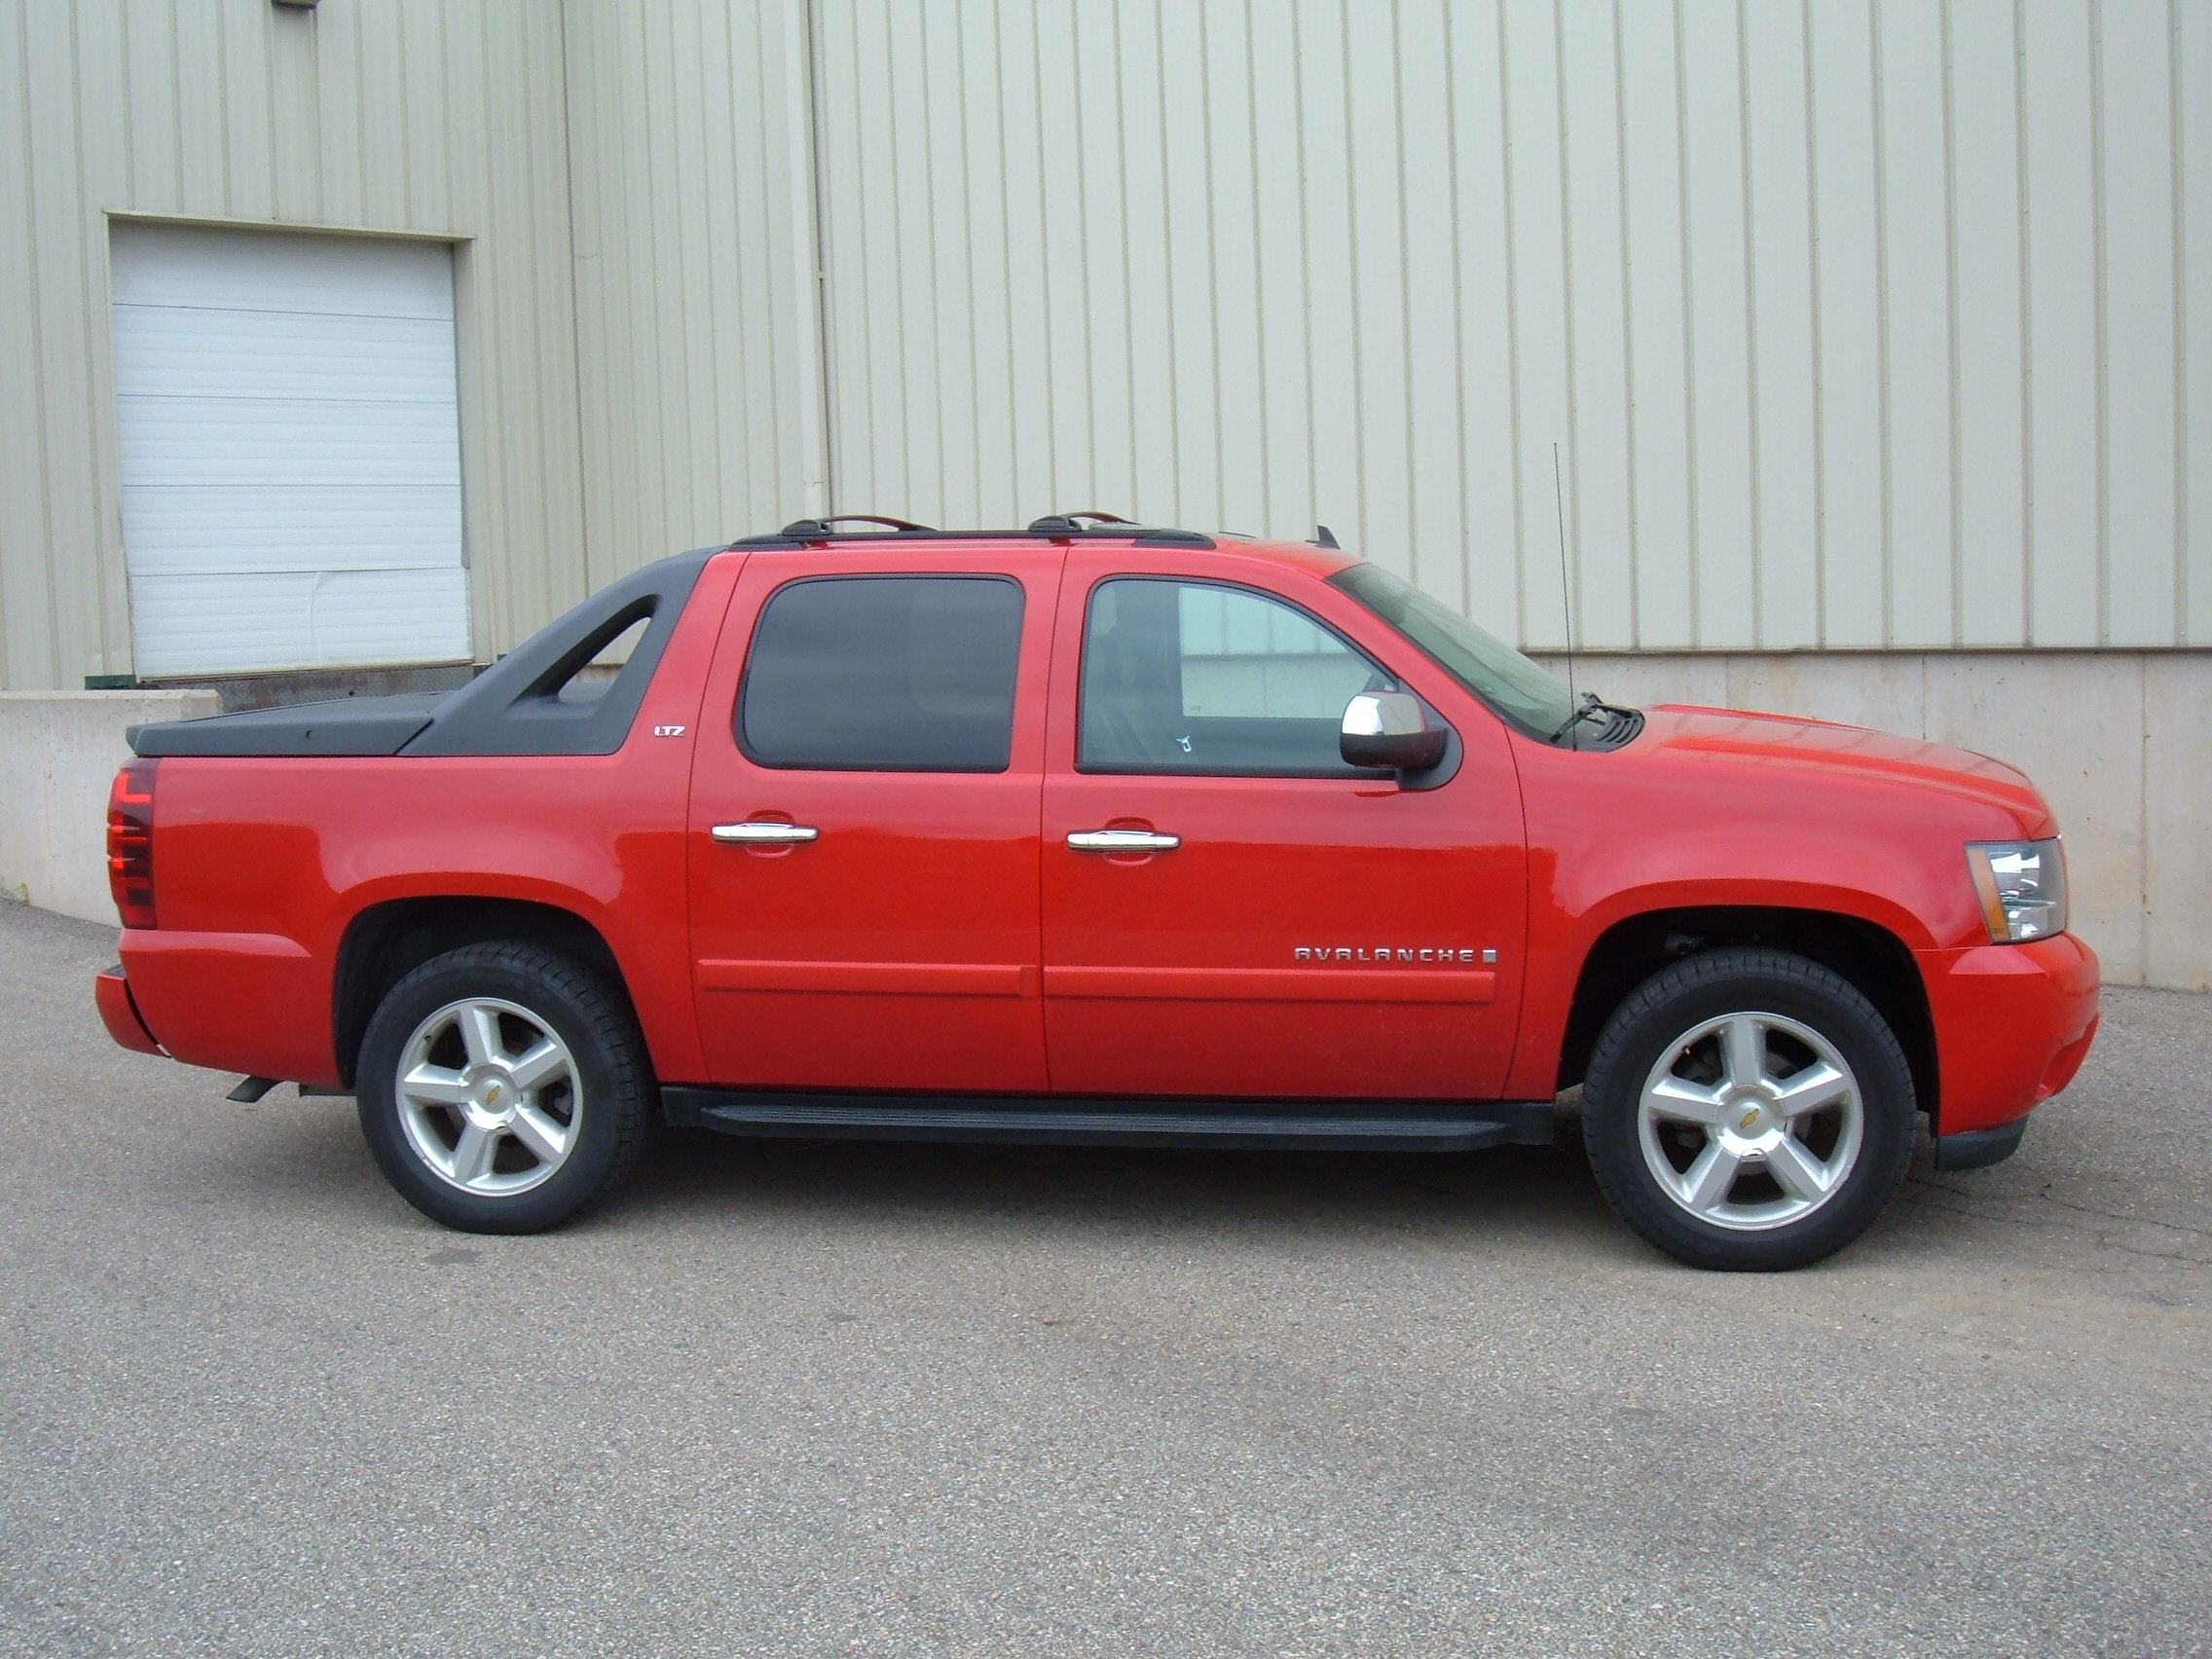 2008 Chevrolet Avalanche in Verona, Wisconsin